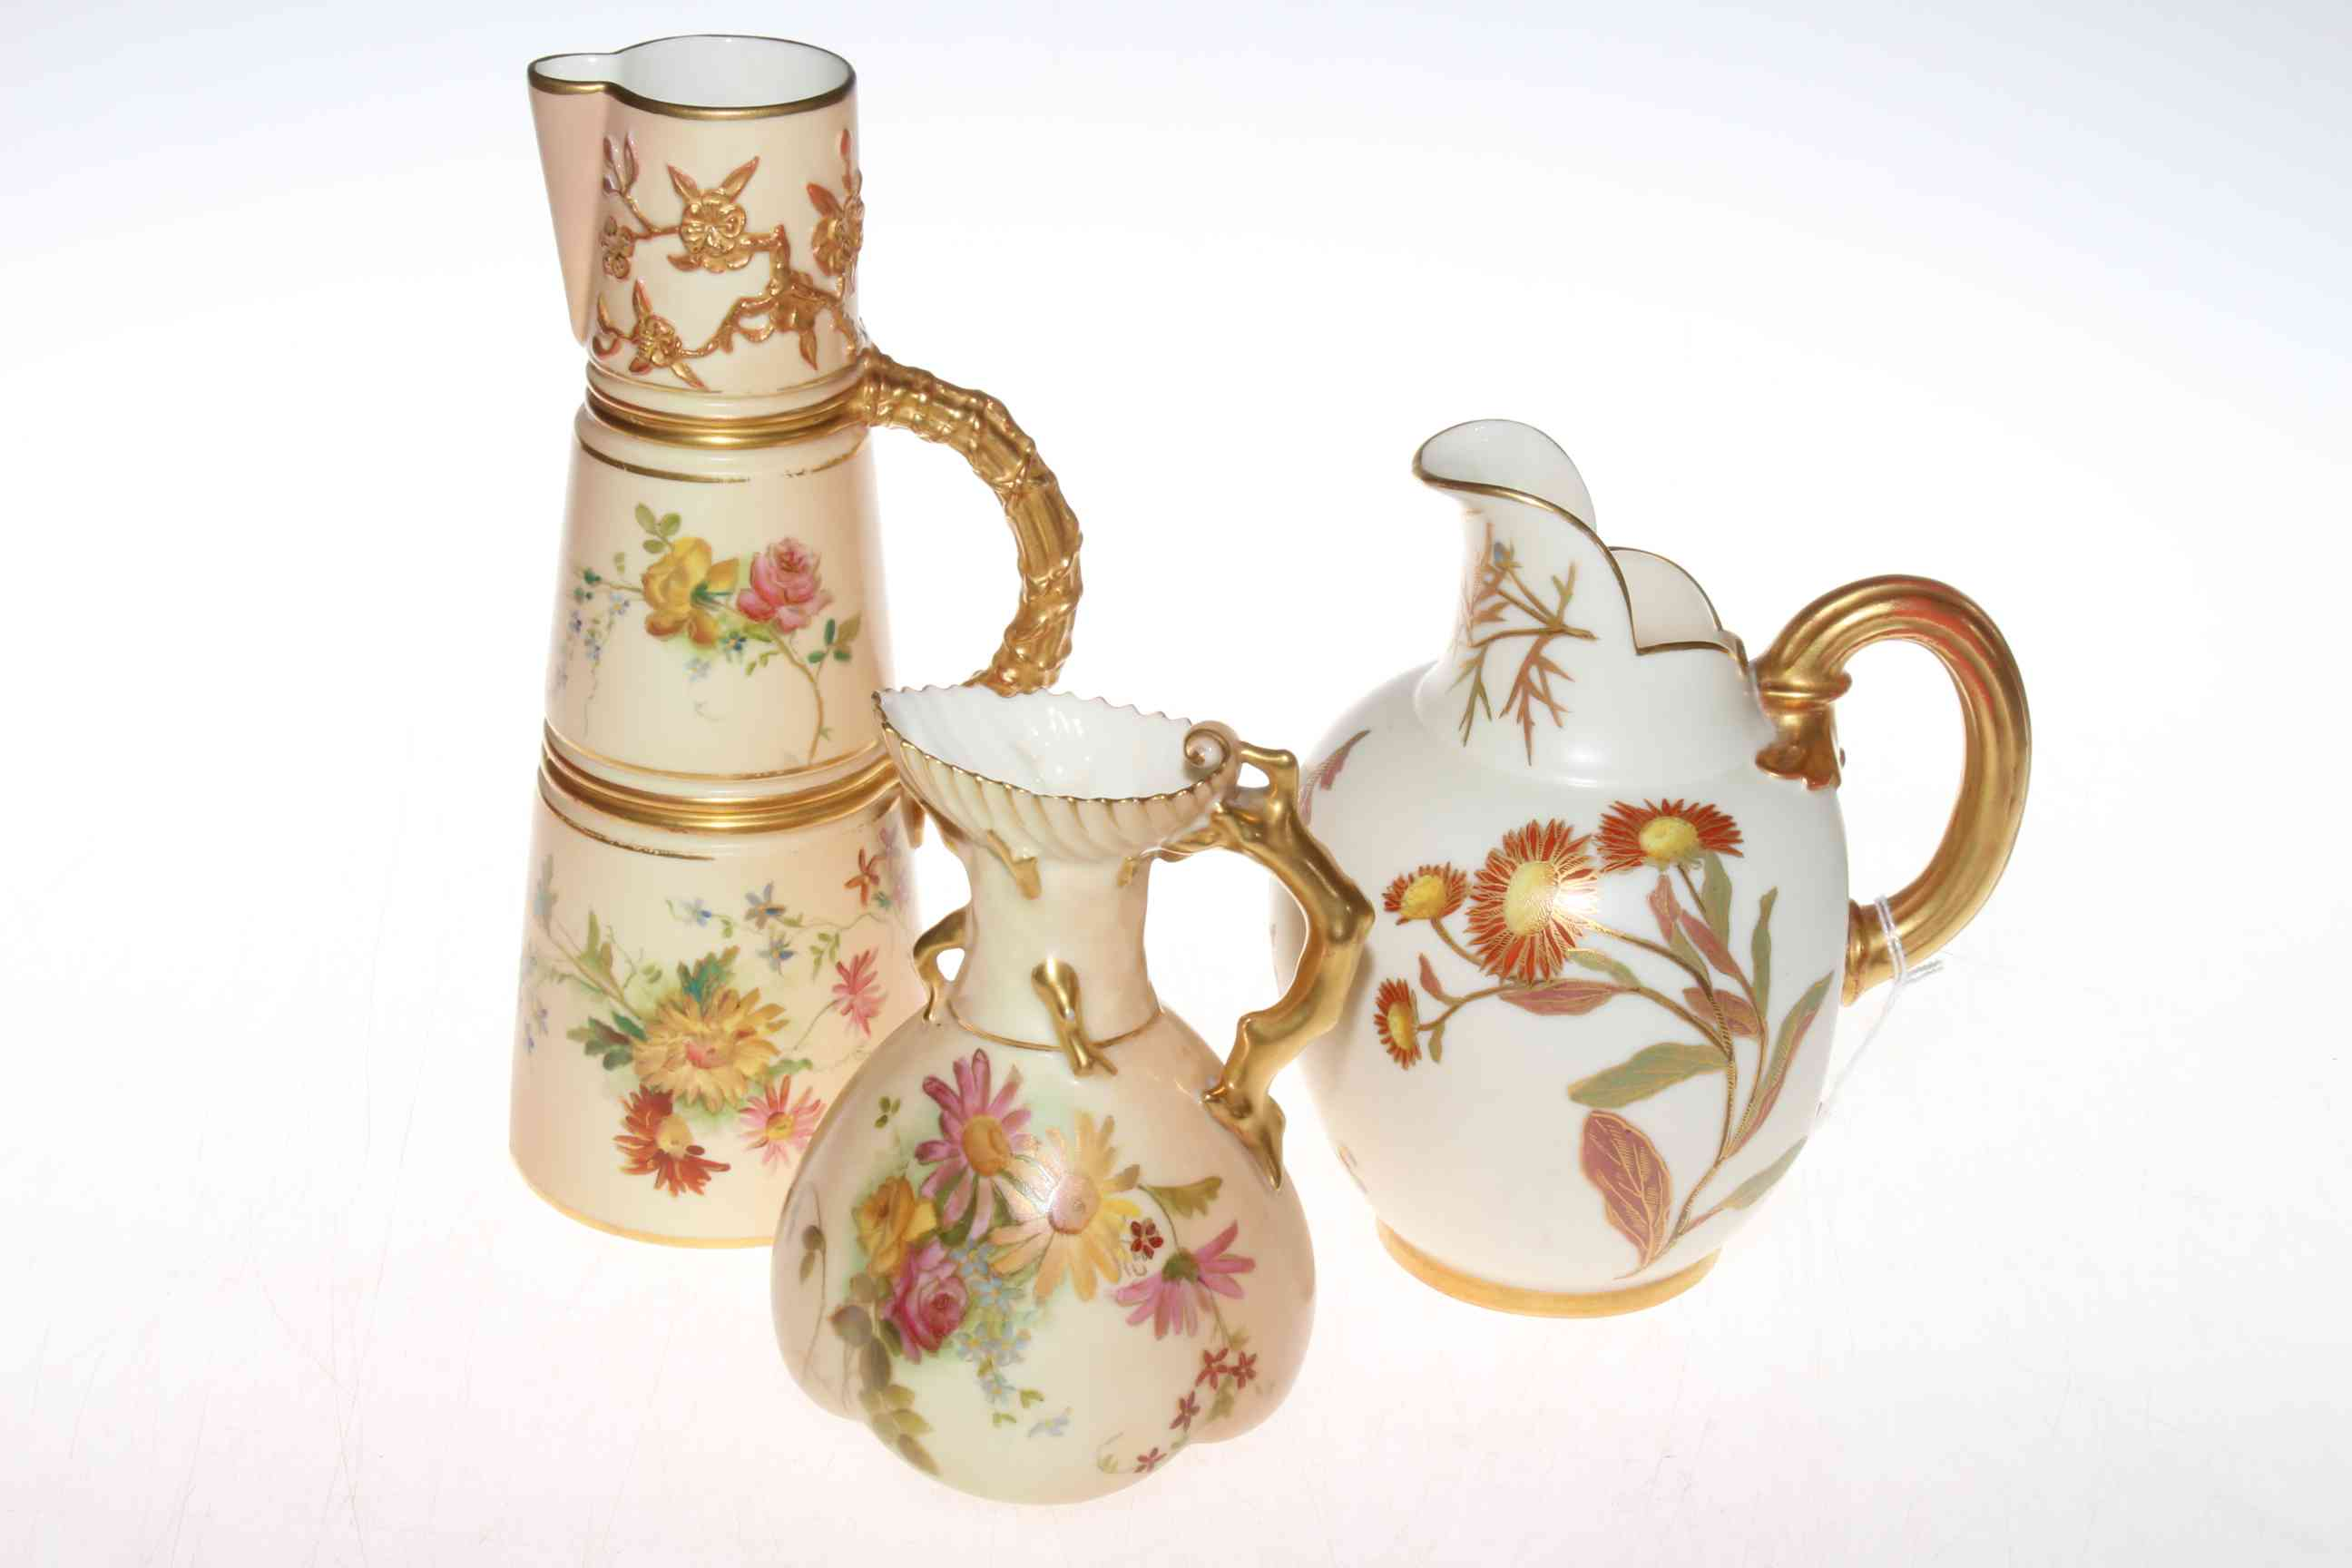 Lot 305 - Late 19th century Royal Worcester blush jug and ewer,